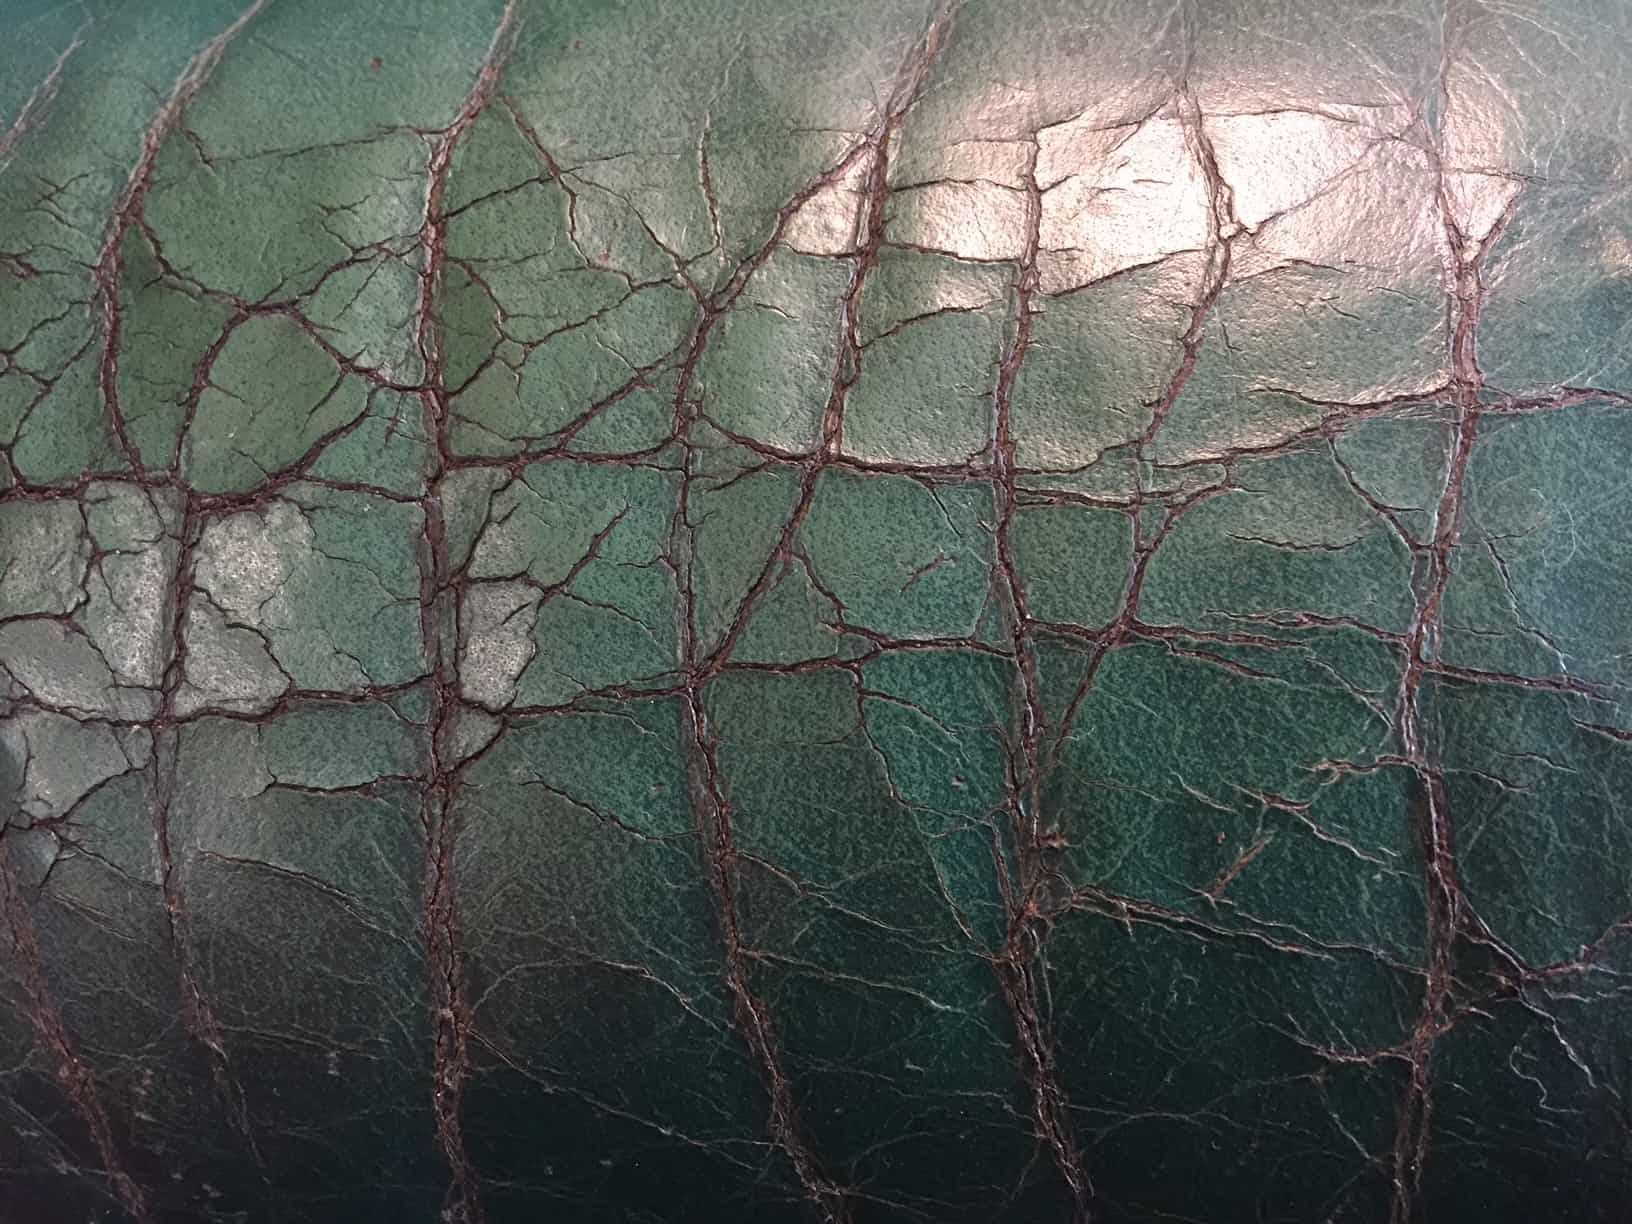 Dry, cracked leather